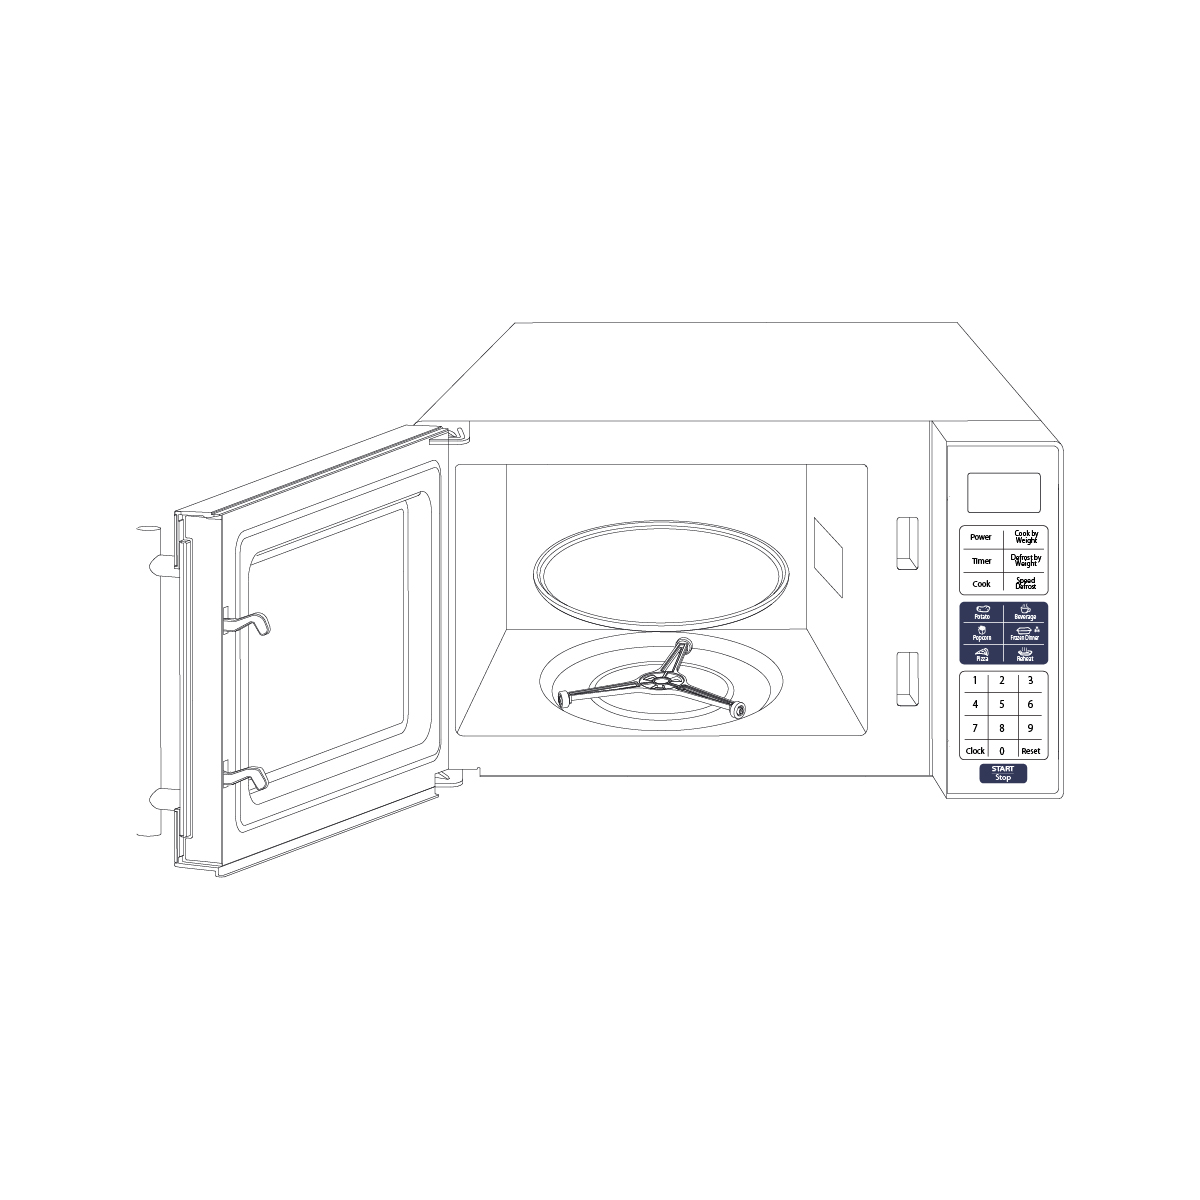 Tundra Truck Microwave Oven Mw Series 120 V Mw700